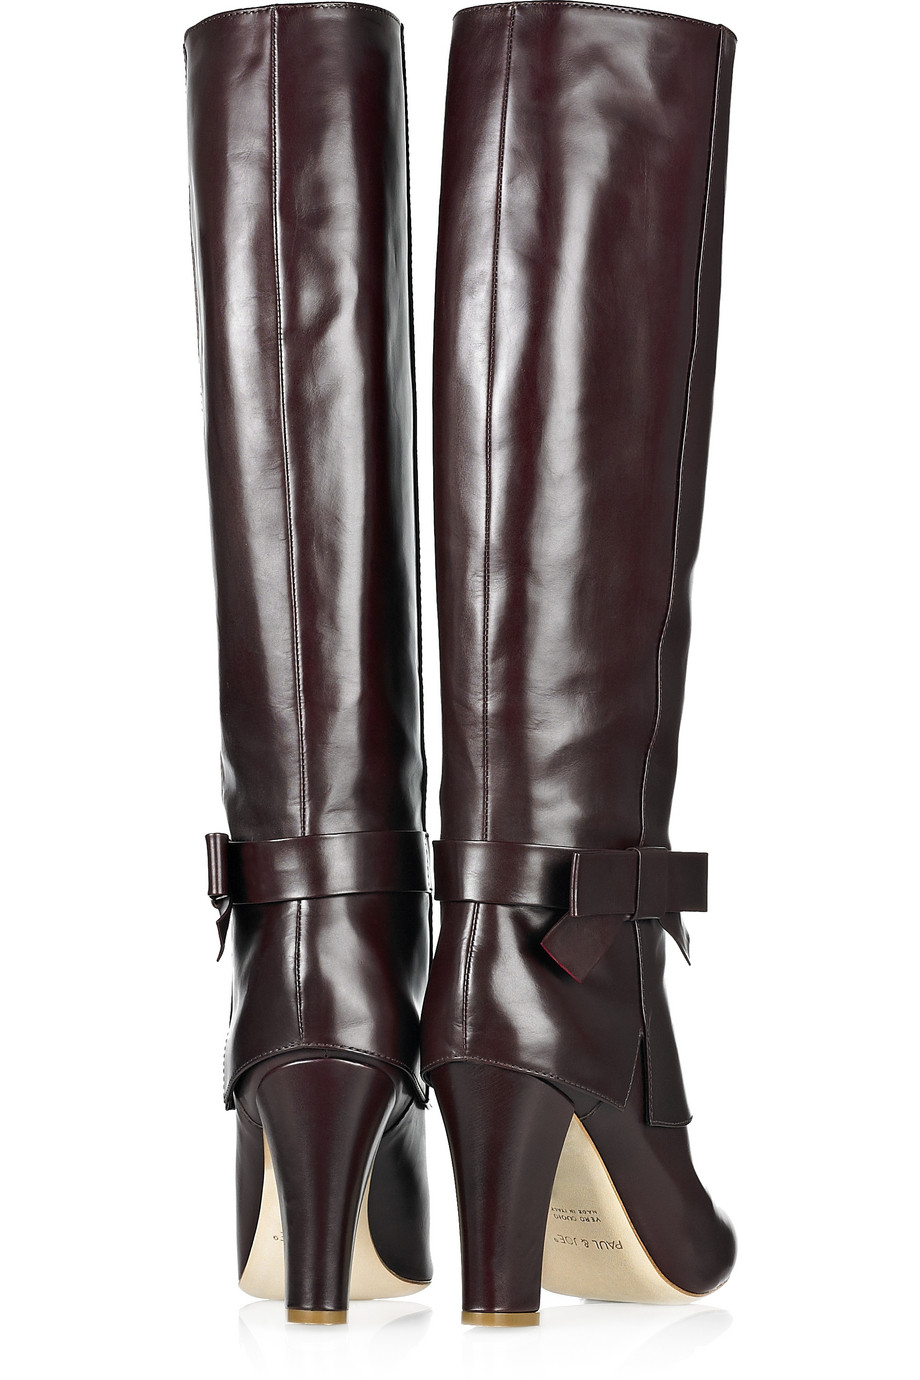 Paul & Joe Iris Knee-high Leather Boots in Brown